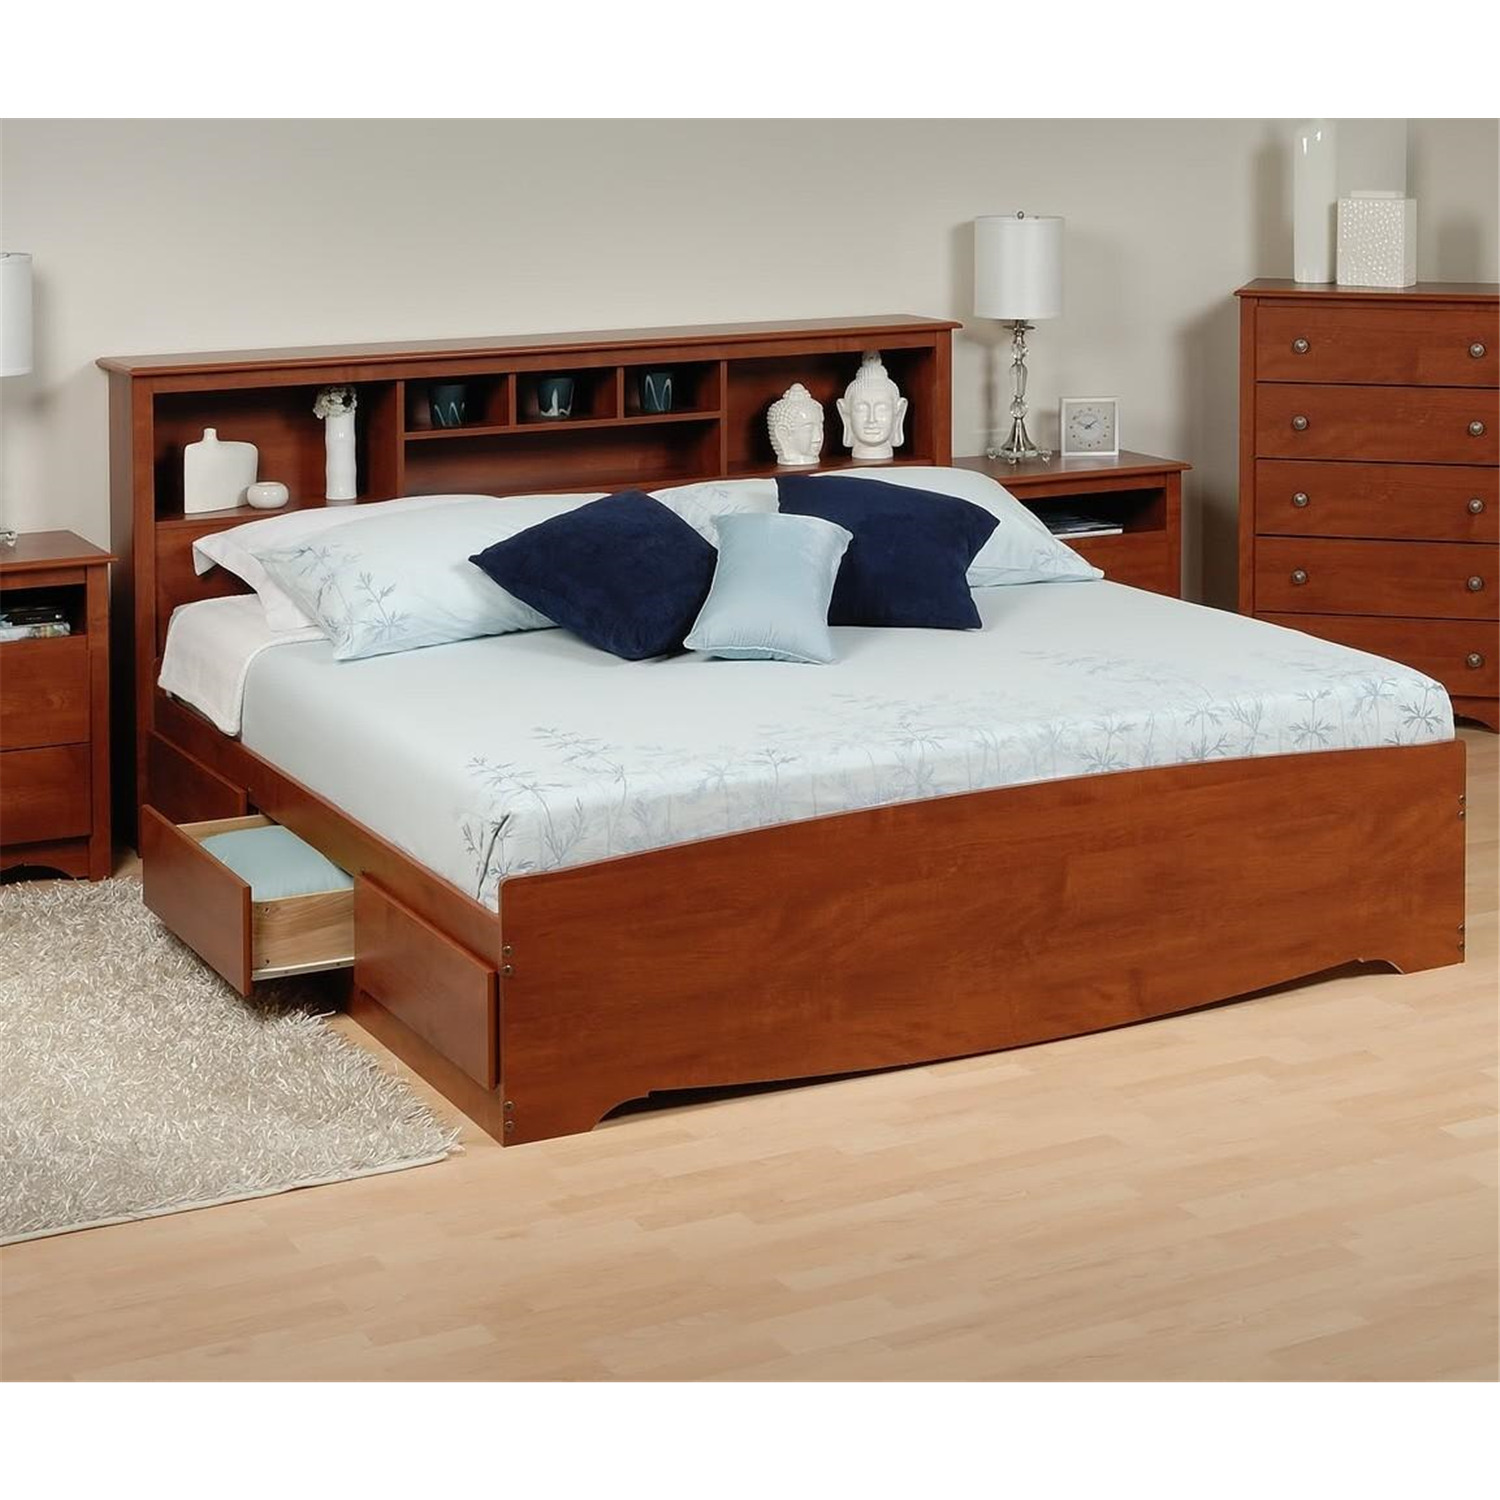 Image Result For Bookcase Headboard Queen